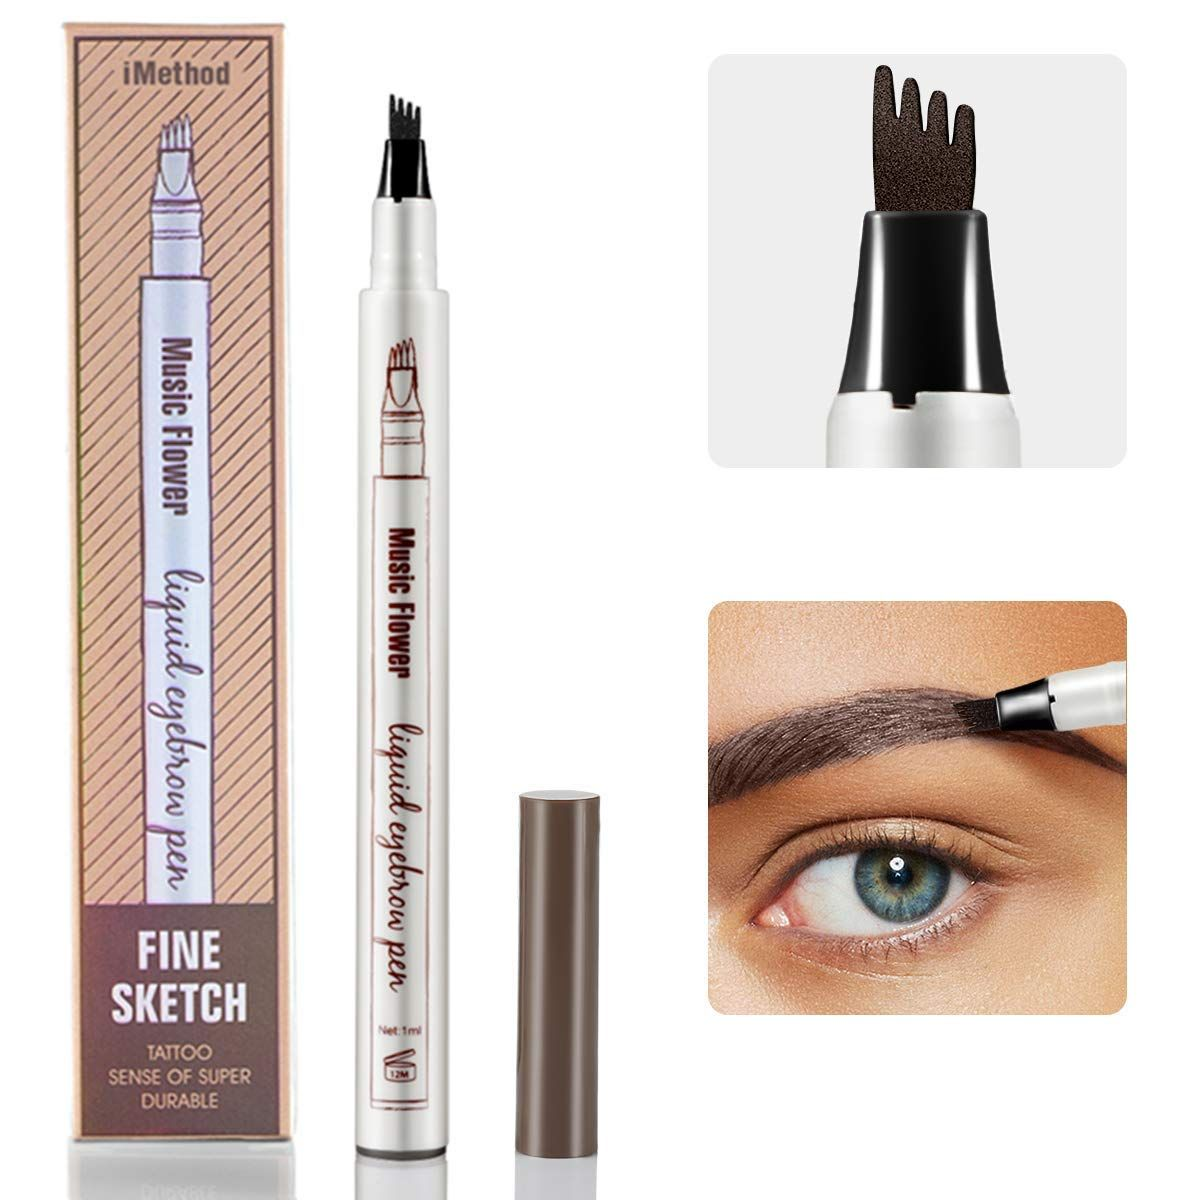 Eyebrow Tattoo Pen iMethod Microblading Eyebrow Pencil